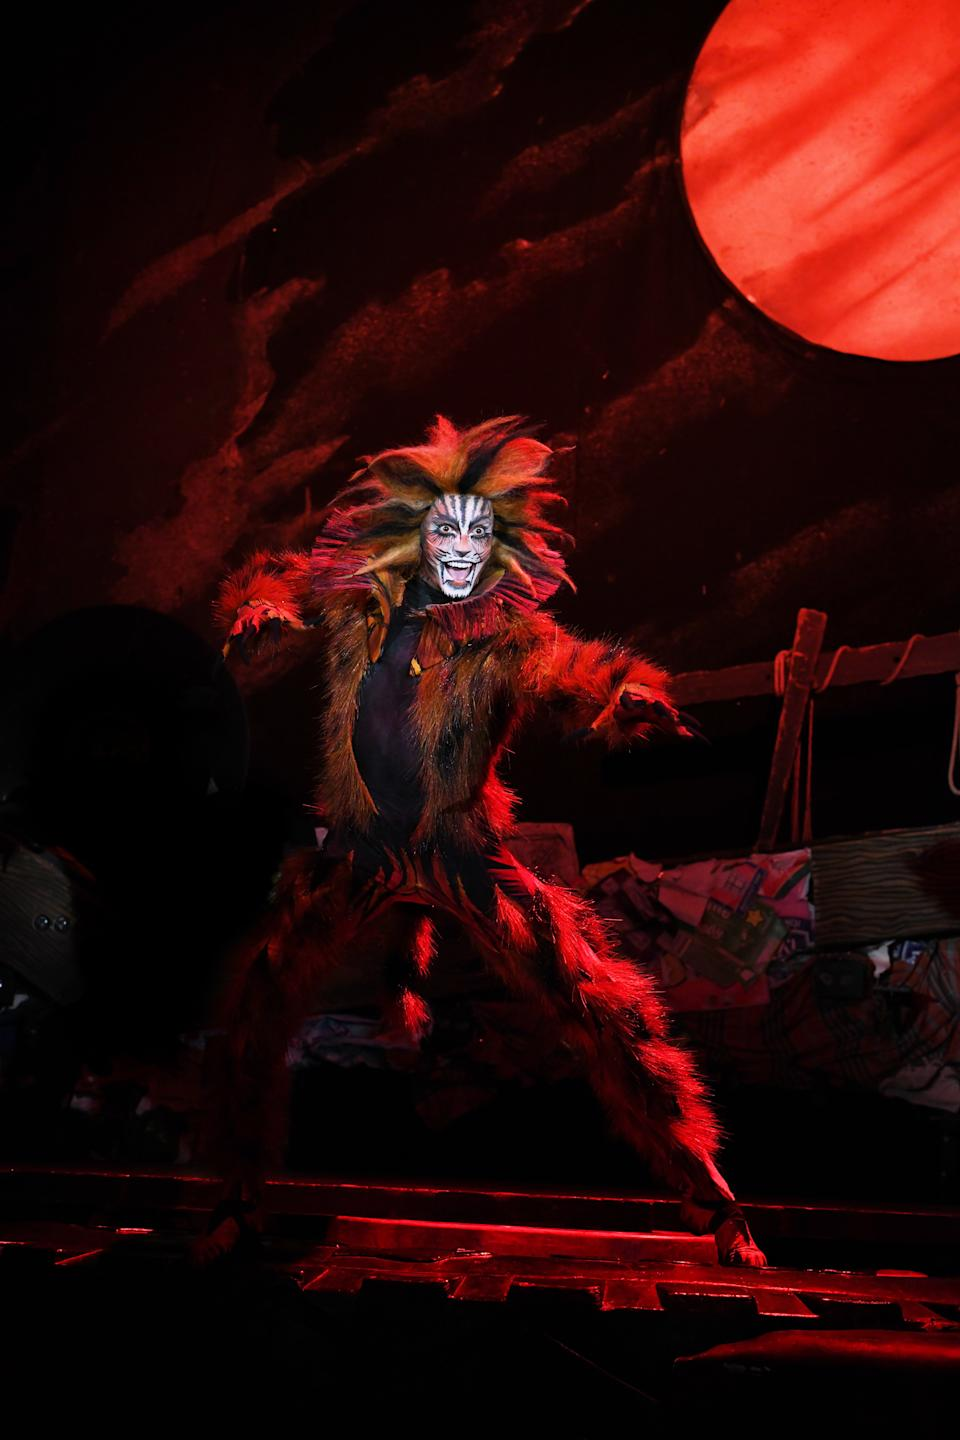 Macavity in the London/West End Cats musical 2019 tour production by Cameron Mackintosh and Andrew Lloyd Webber's The Really Useful Theatre Group. (PHOTO: CATS Tour 2019/Alessandro Pinna)